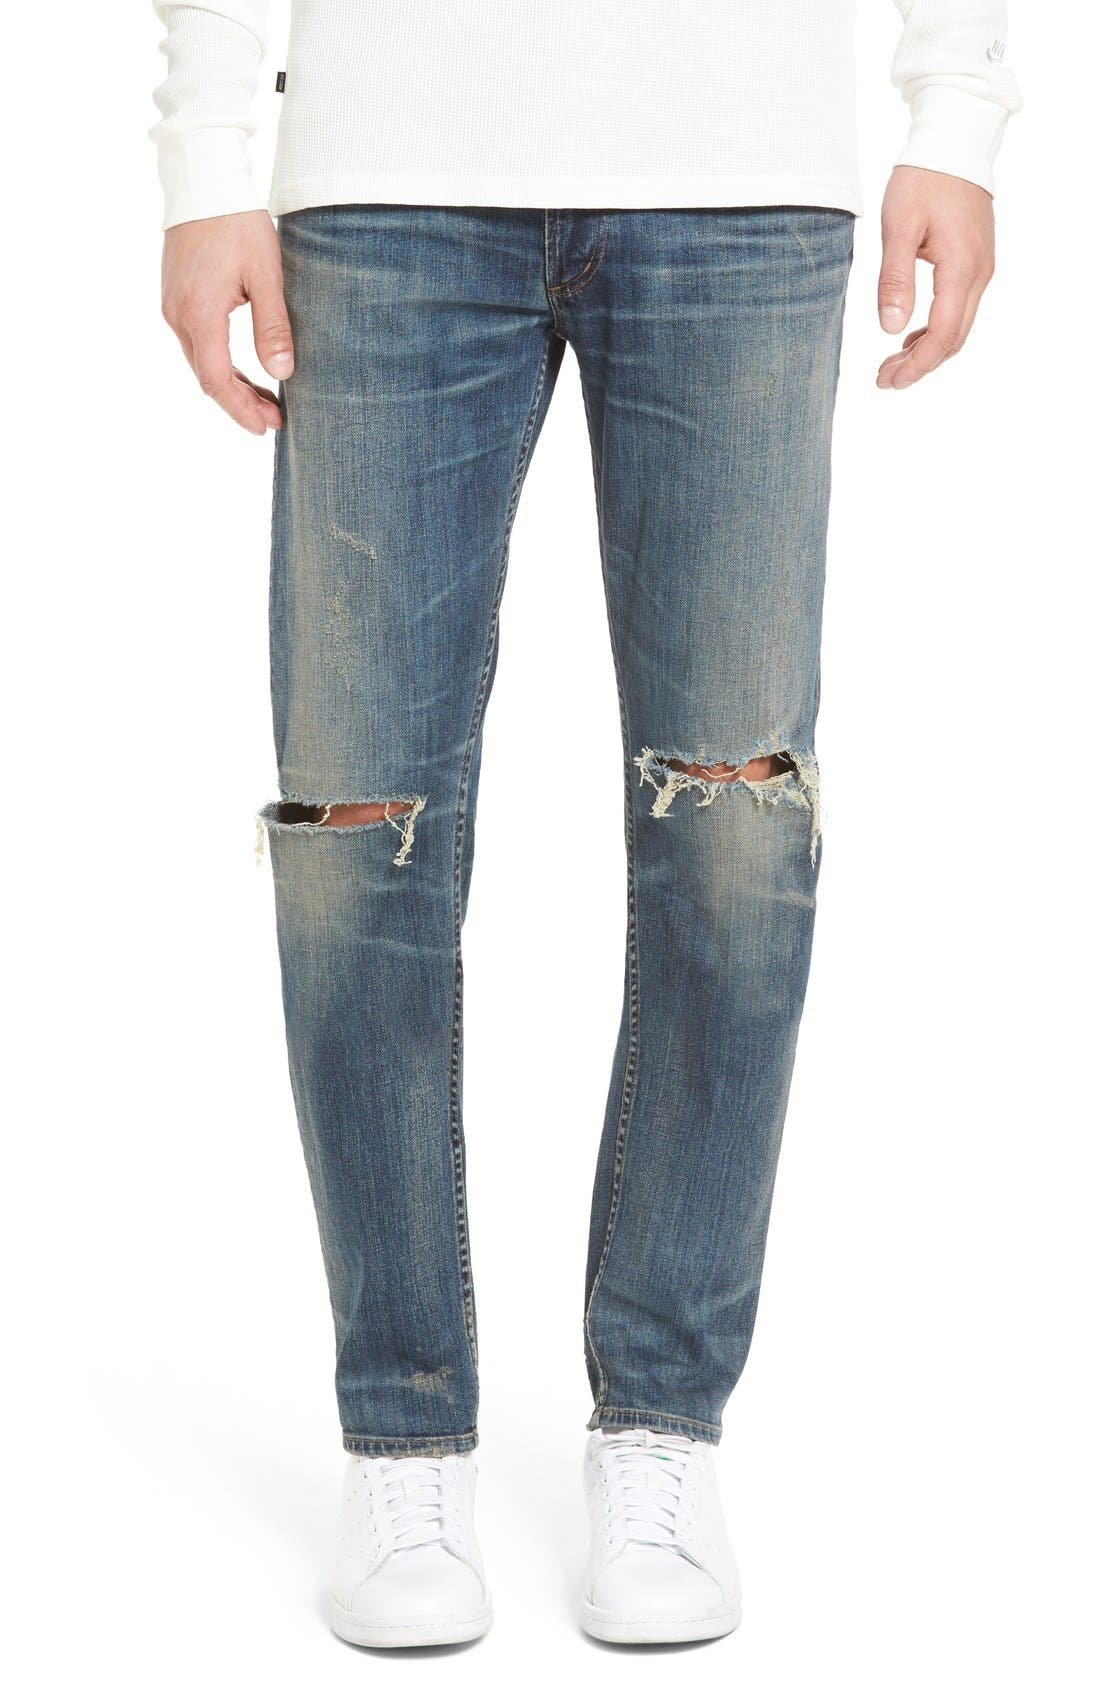 Bowery Slim Fit Jeans,                             Main thumbnail 1, color,